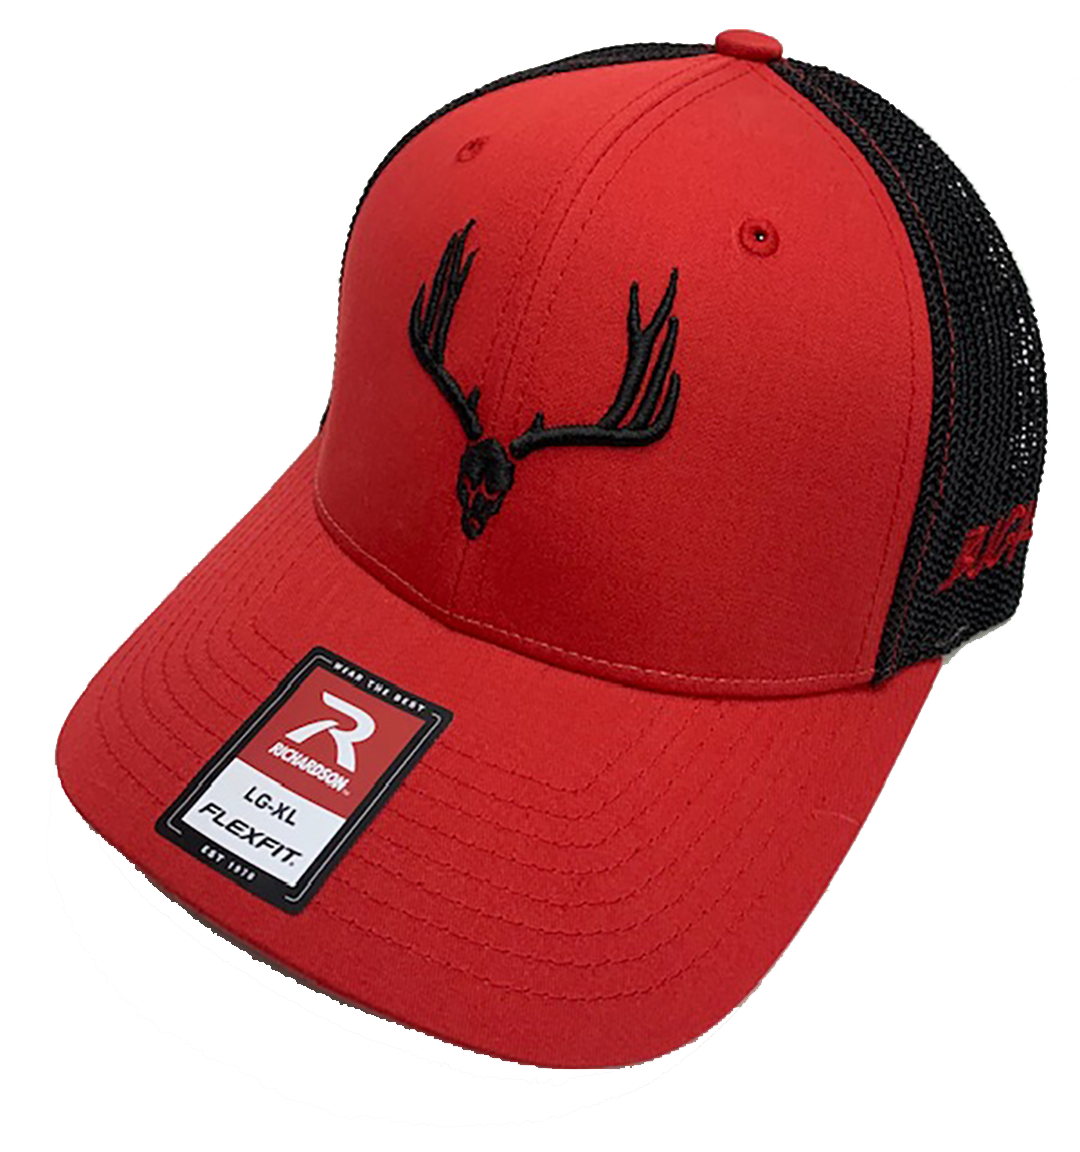 Buckwild Red With Black Logo Flexfit Hat - Dirty Doe & Buck Wild ,hunting apparel,camo,girls that hunt,huntress, buck wild,deer shirts,buck shirts,country shirt,country girl shirts, amazon,cabelas,bass pro shop,sportmans,